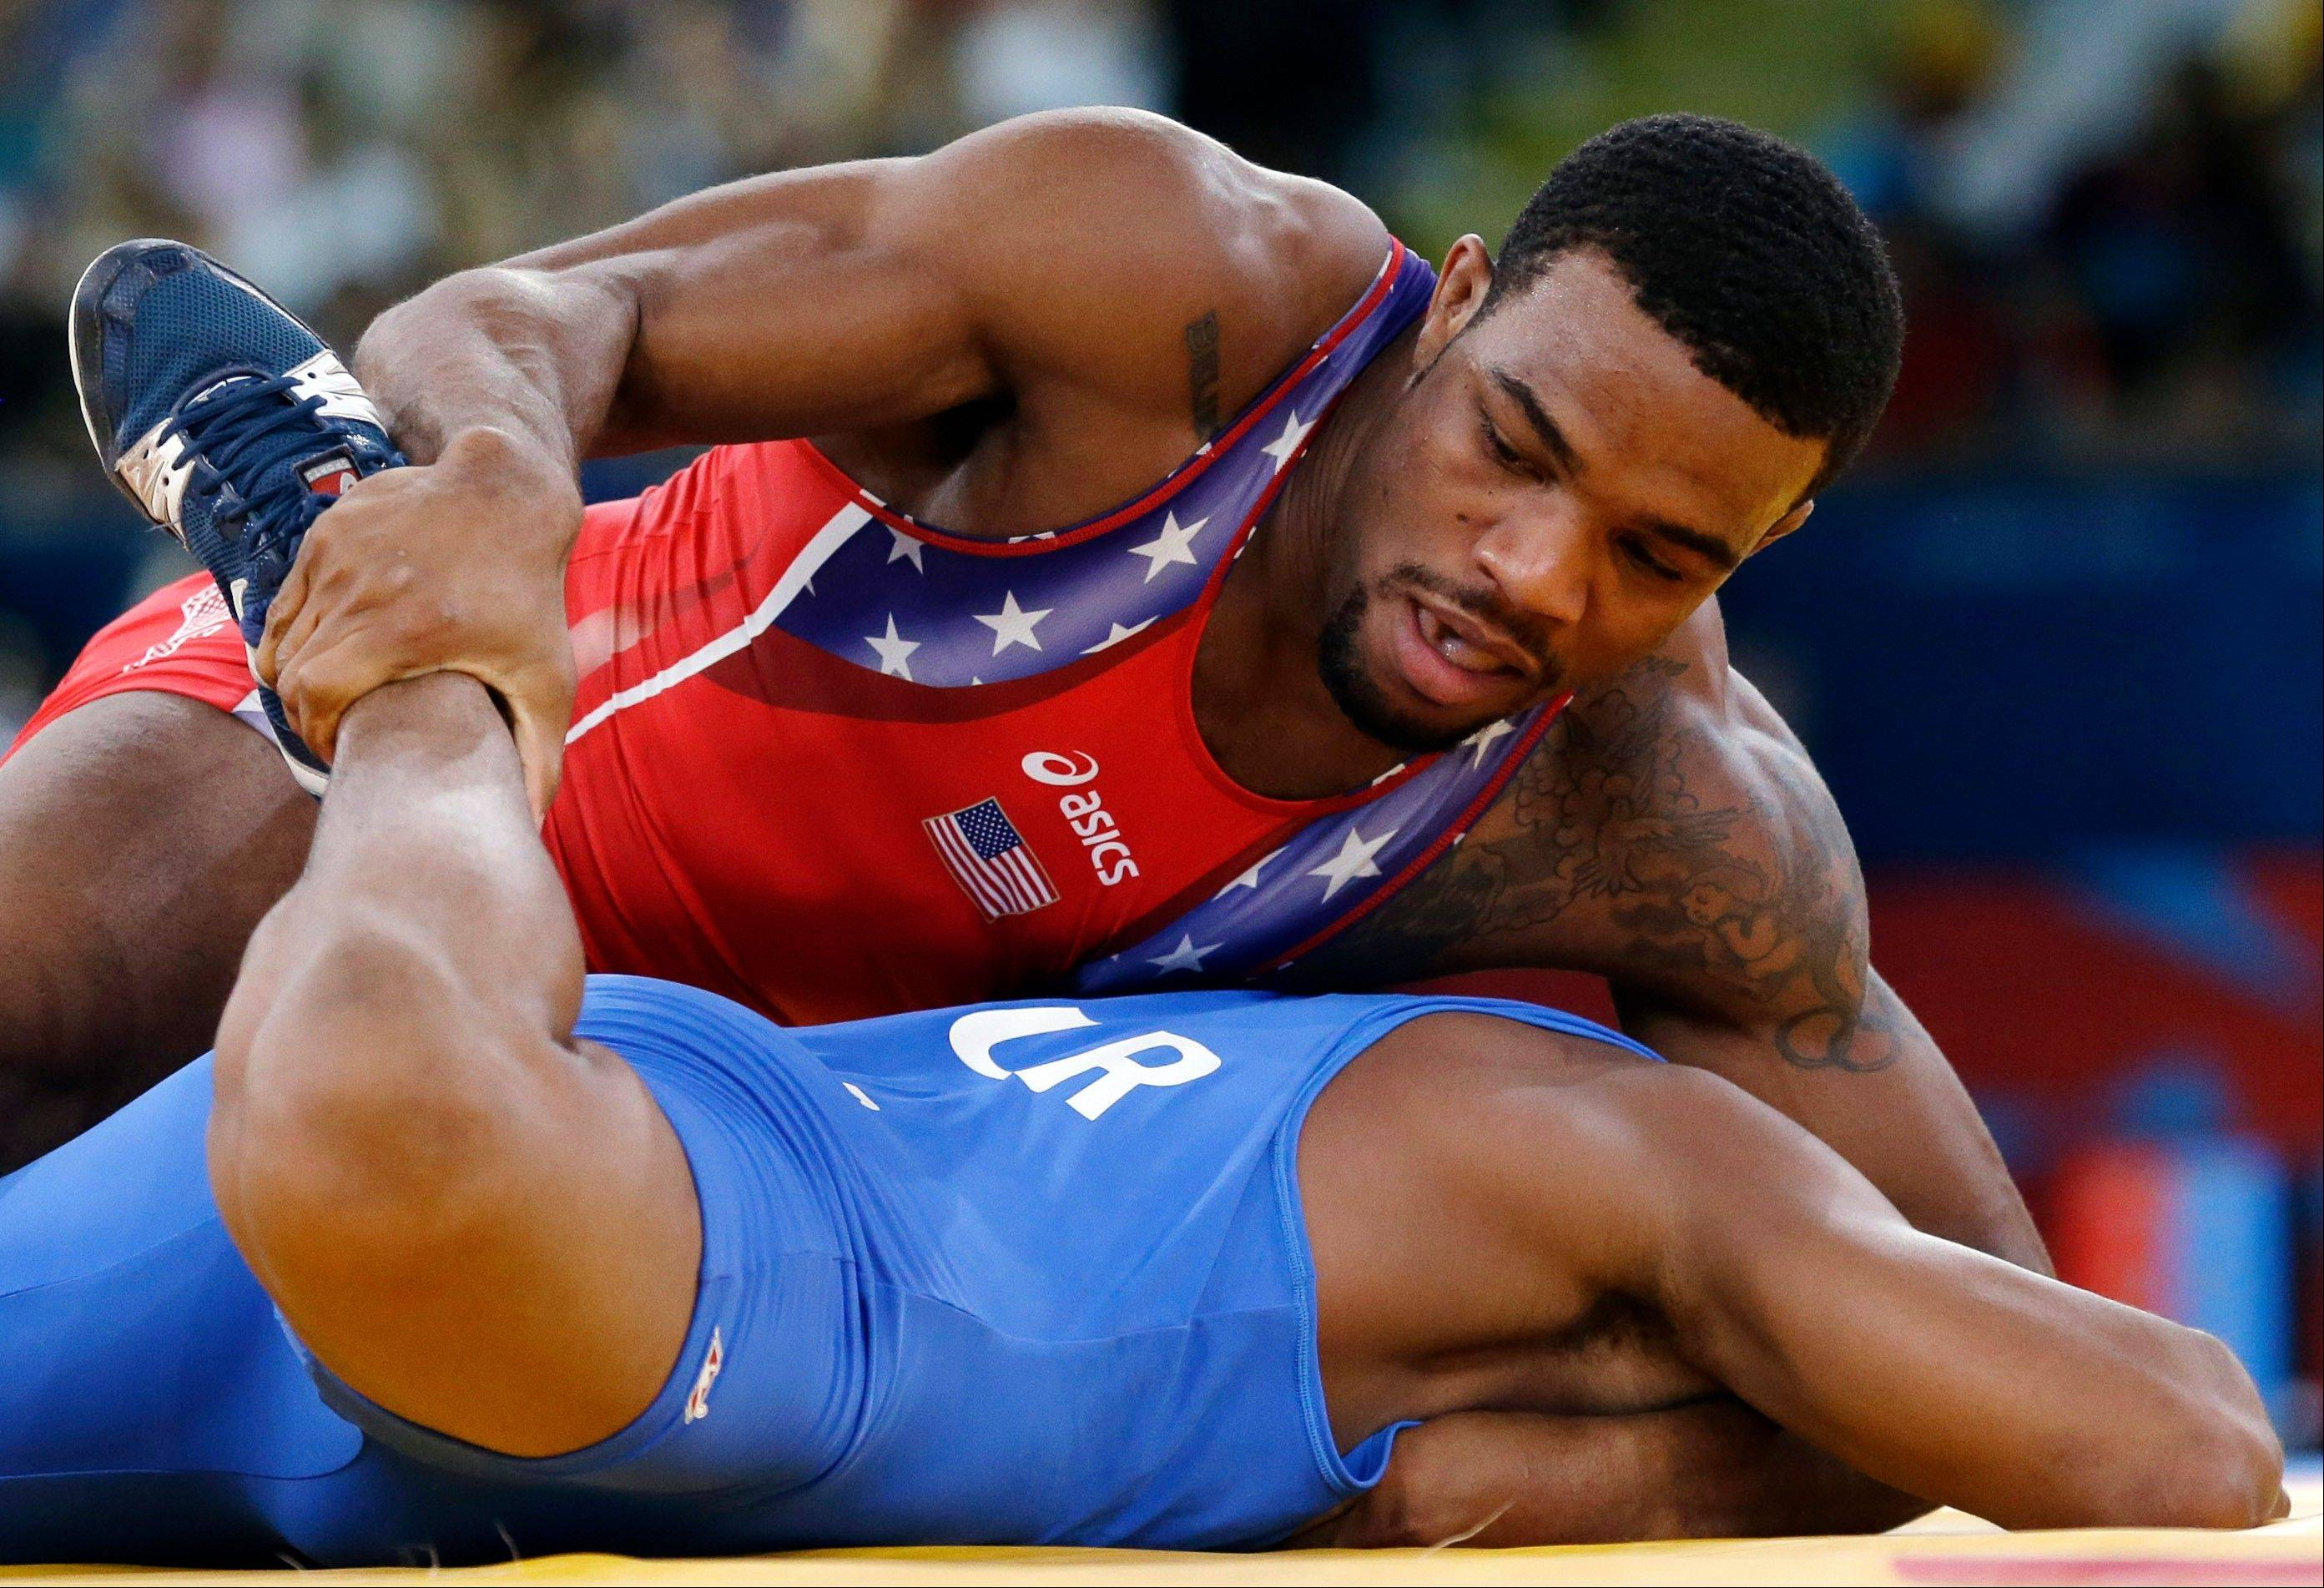 The United States� Jordan Ernest Burroughs, in red, and Puerto Rico�s Francisco Daniel Soler Tanco compete in a 74-kg men�s freestyle match at the 2012 Summer Olympics in London. Wrestling is hoping to be included into the 2020 Olympic Games.